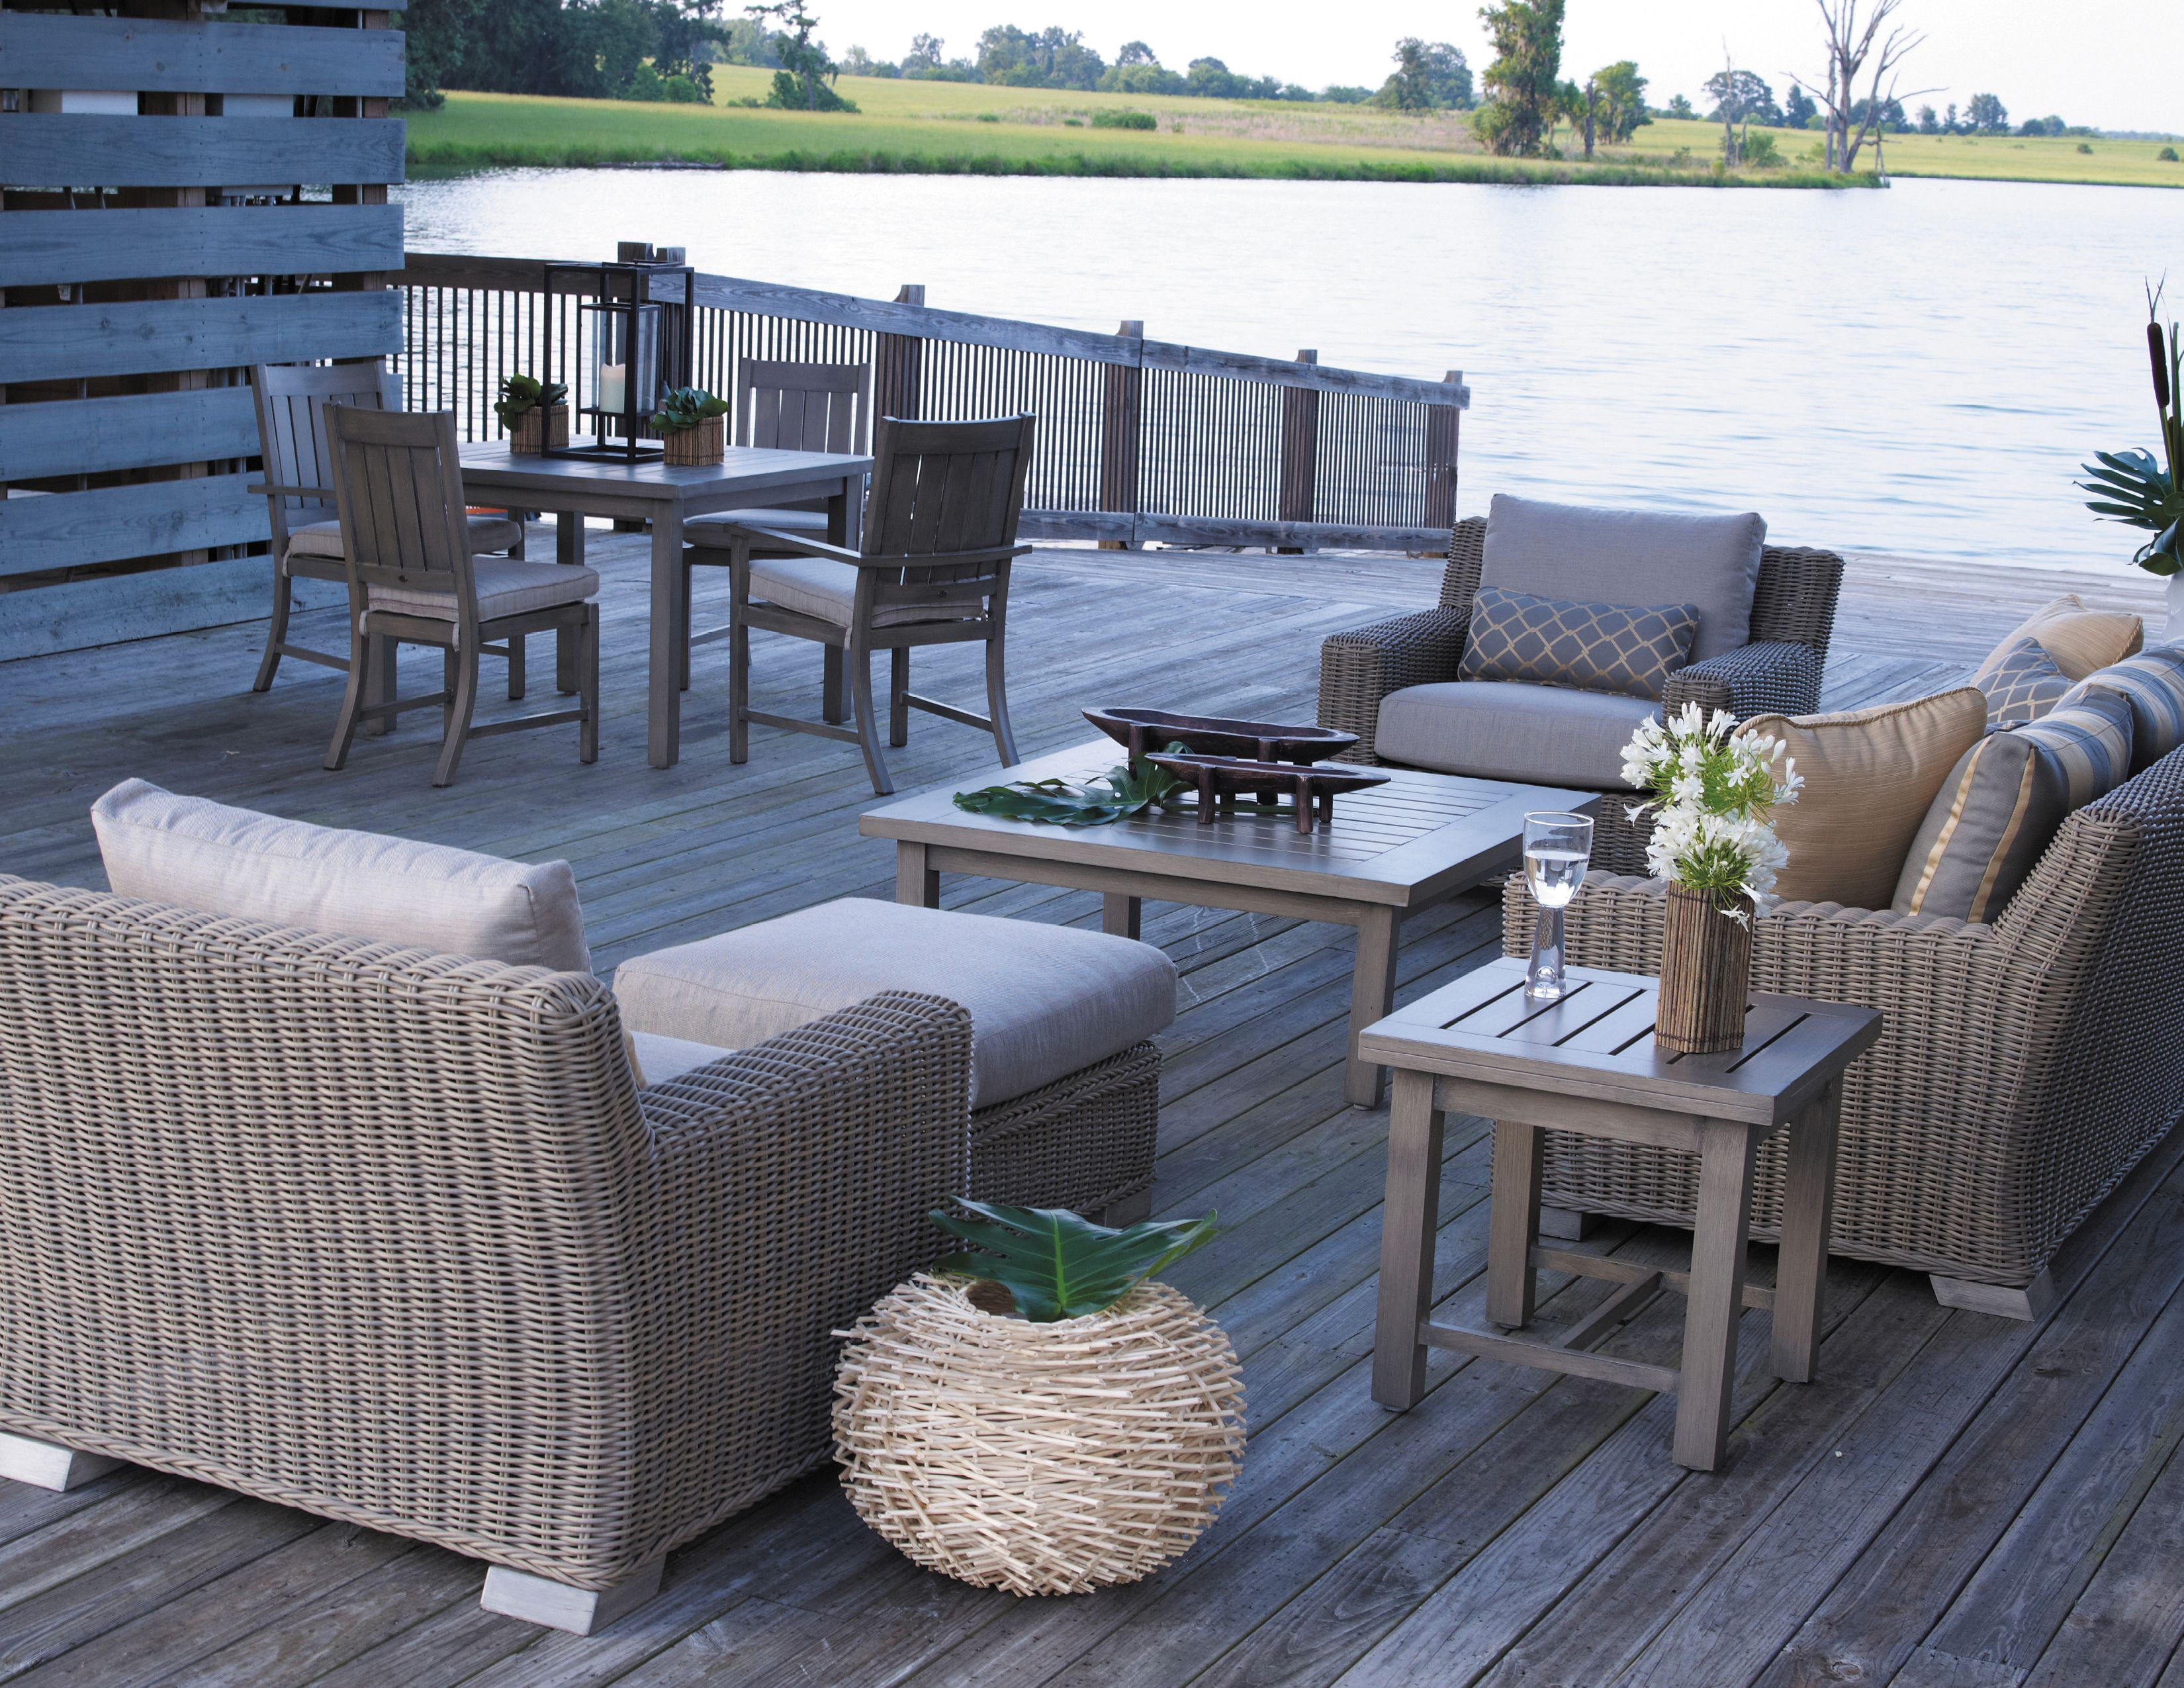 Create a unique look outdoors by mixing materials Here is Summer